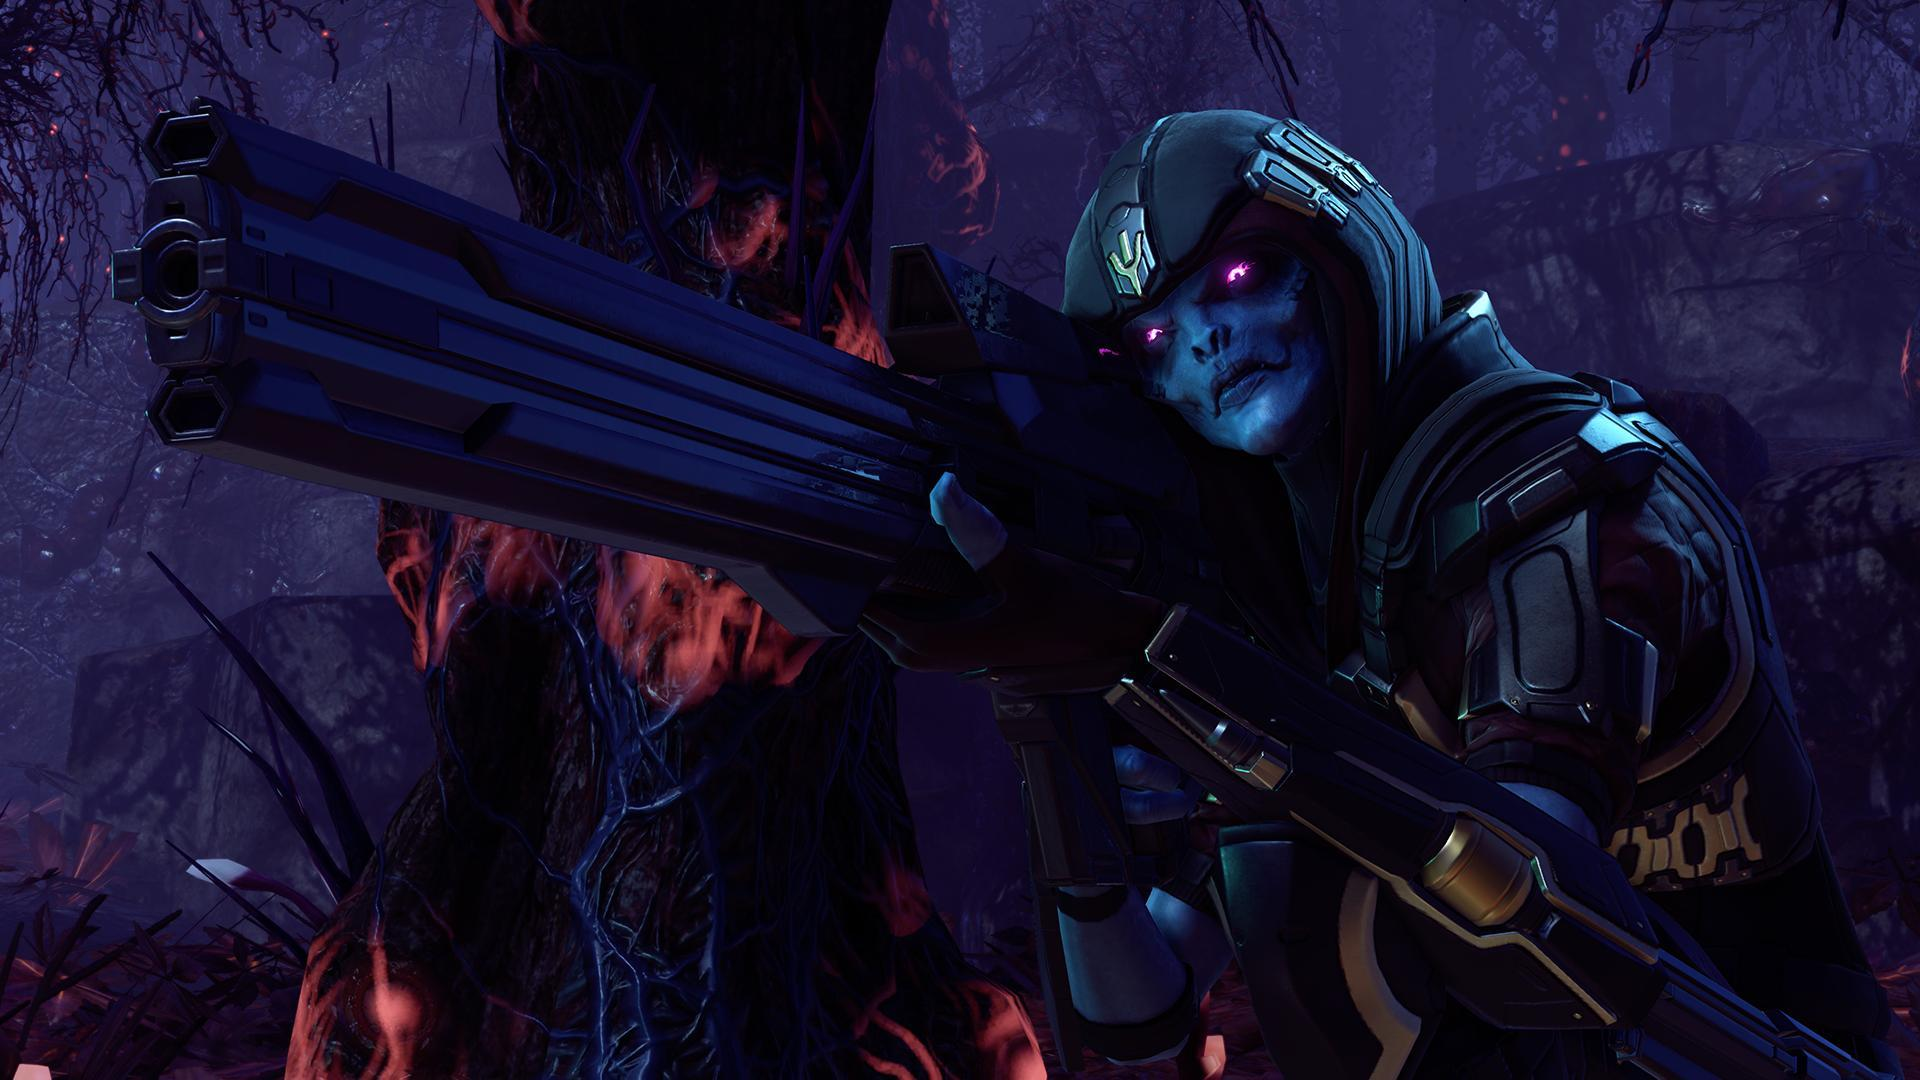 Screenshot of the XCOM 2 DLC, called XCOM 2: War of the Chosen.